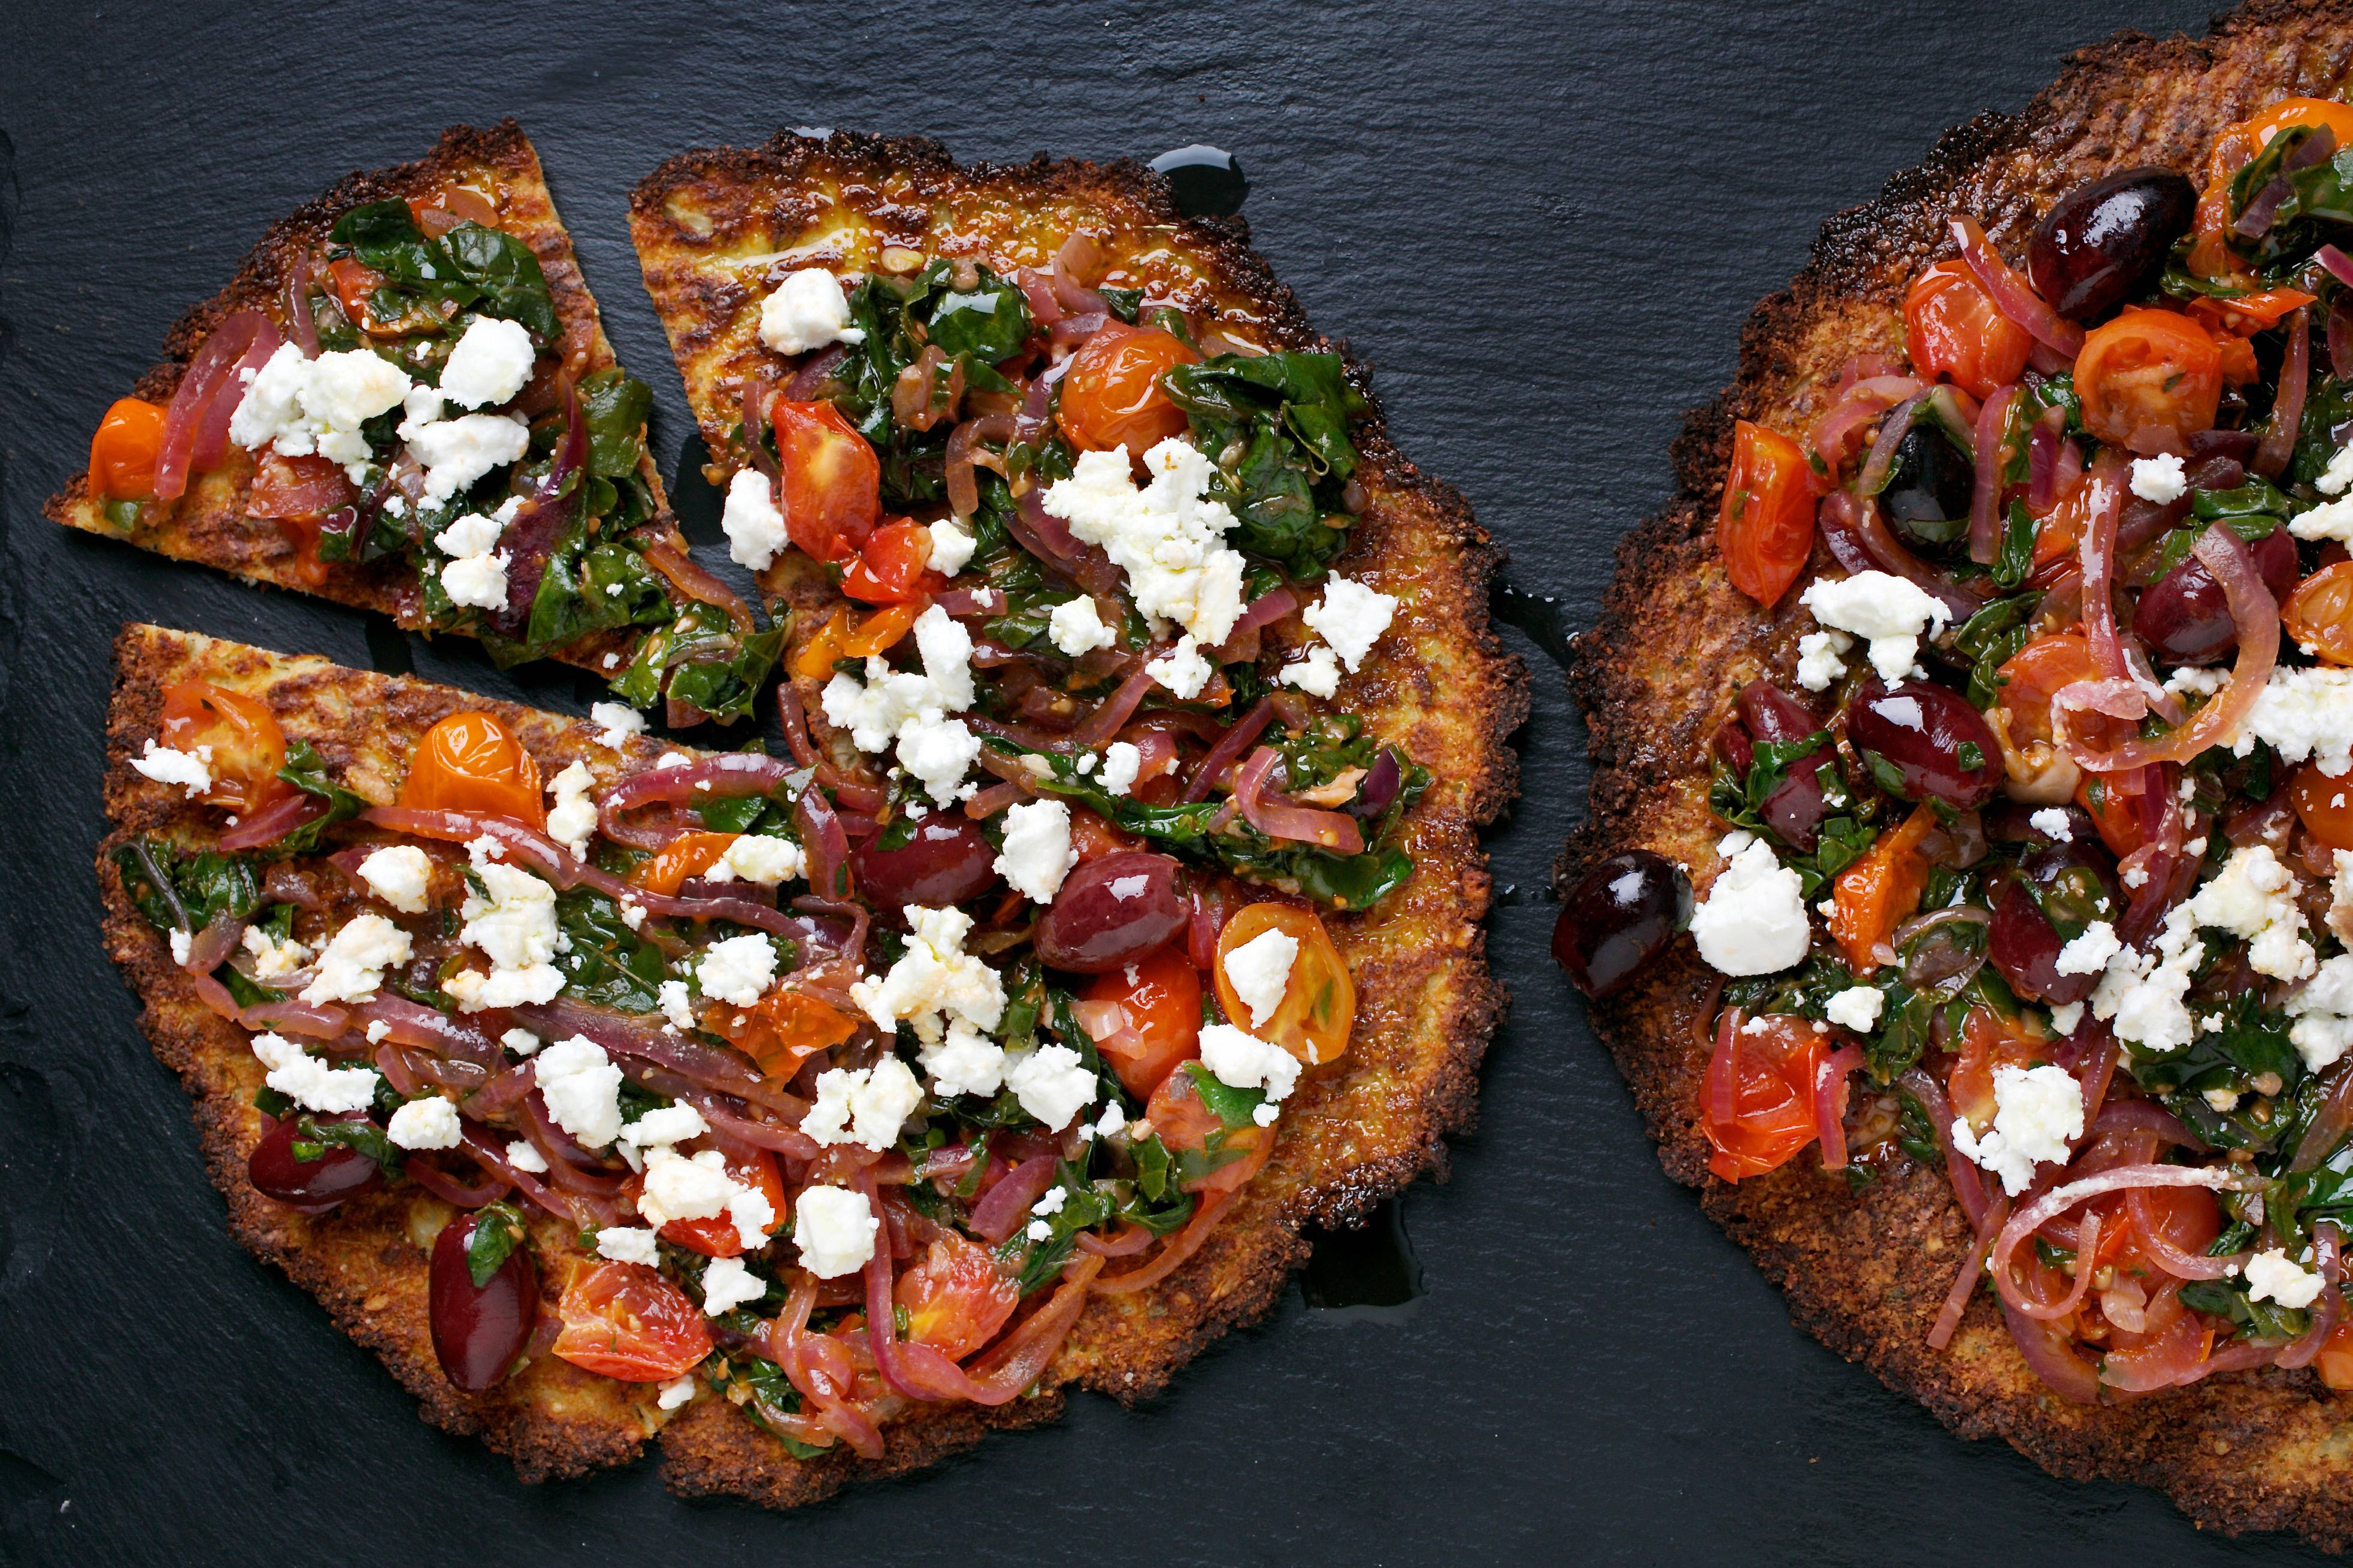 Cauliflower Pizzas With Chard and Olives is made with a perfected technique from Zita Steyn.